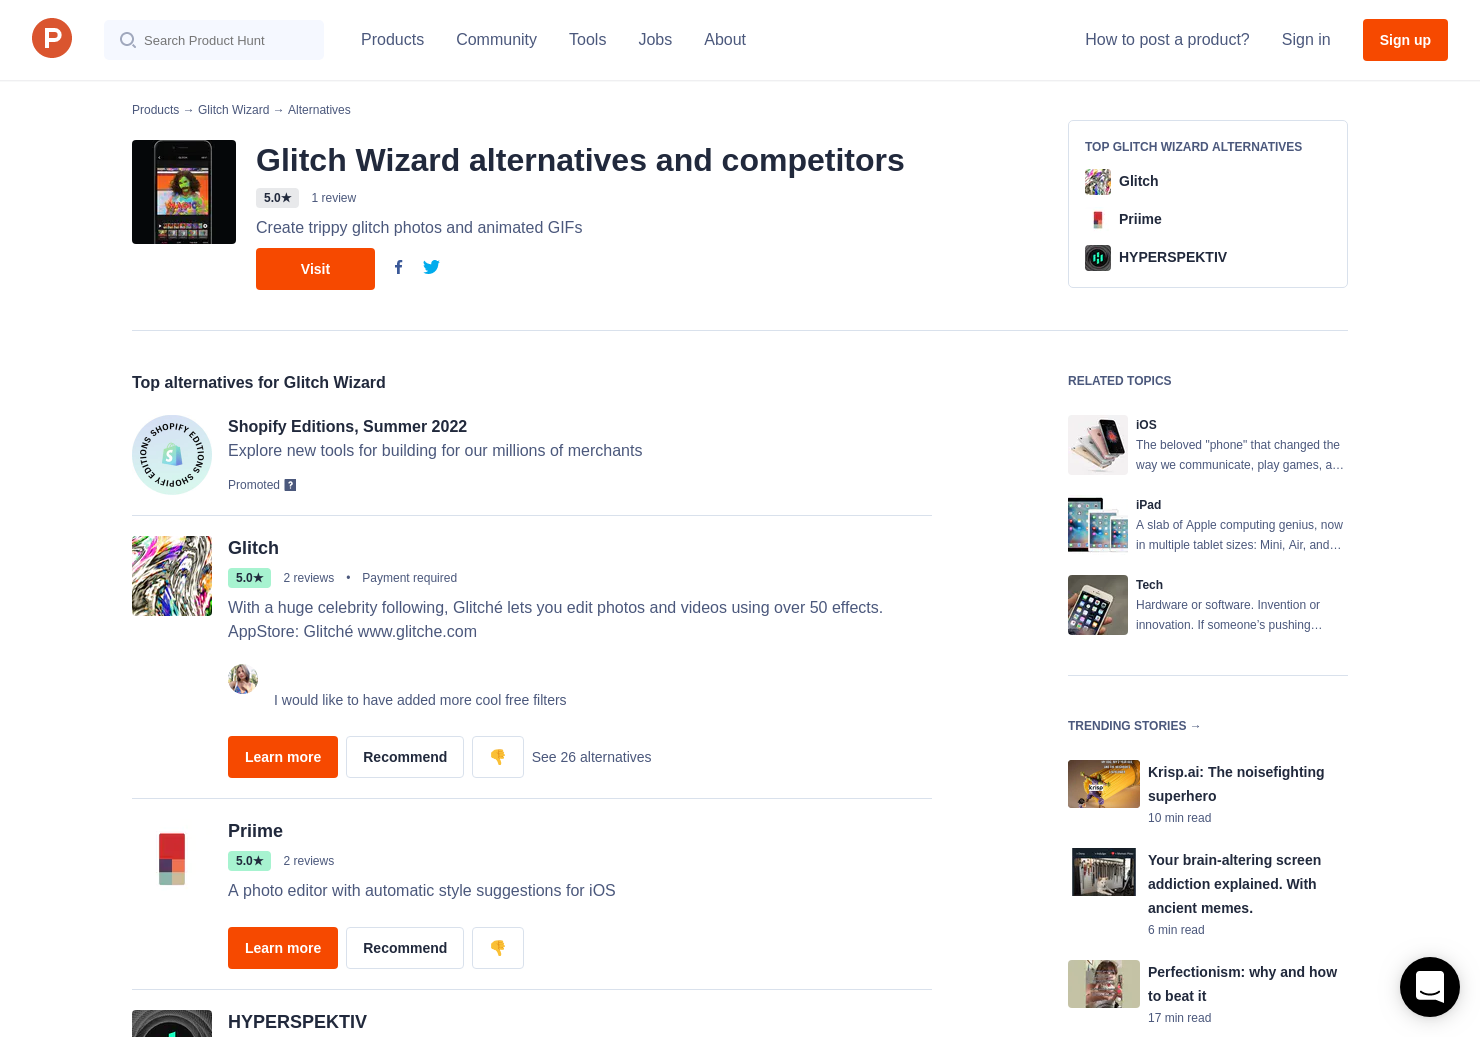 11 Alternatives to Glitch Wizard for iPhone, iPad | Product Hunt